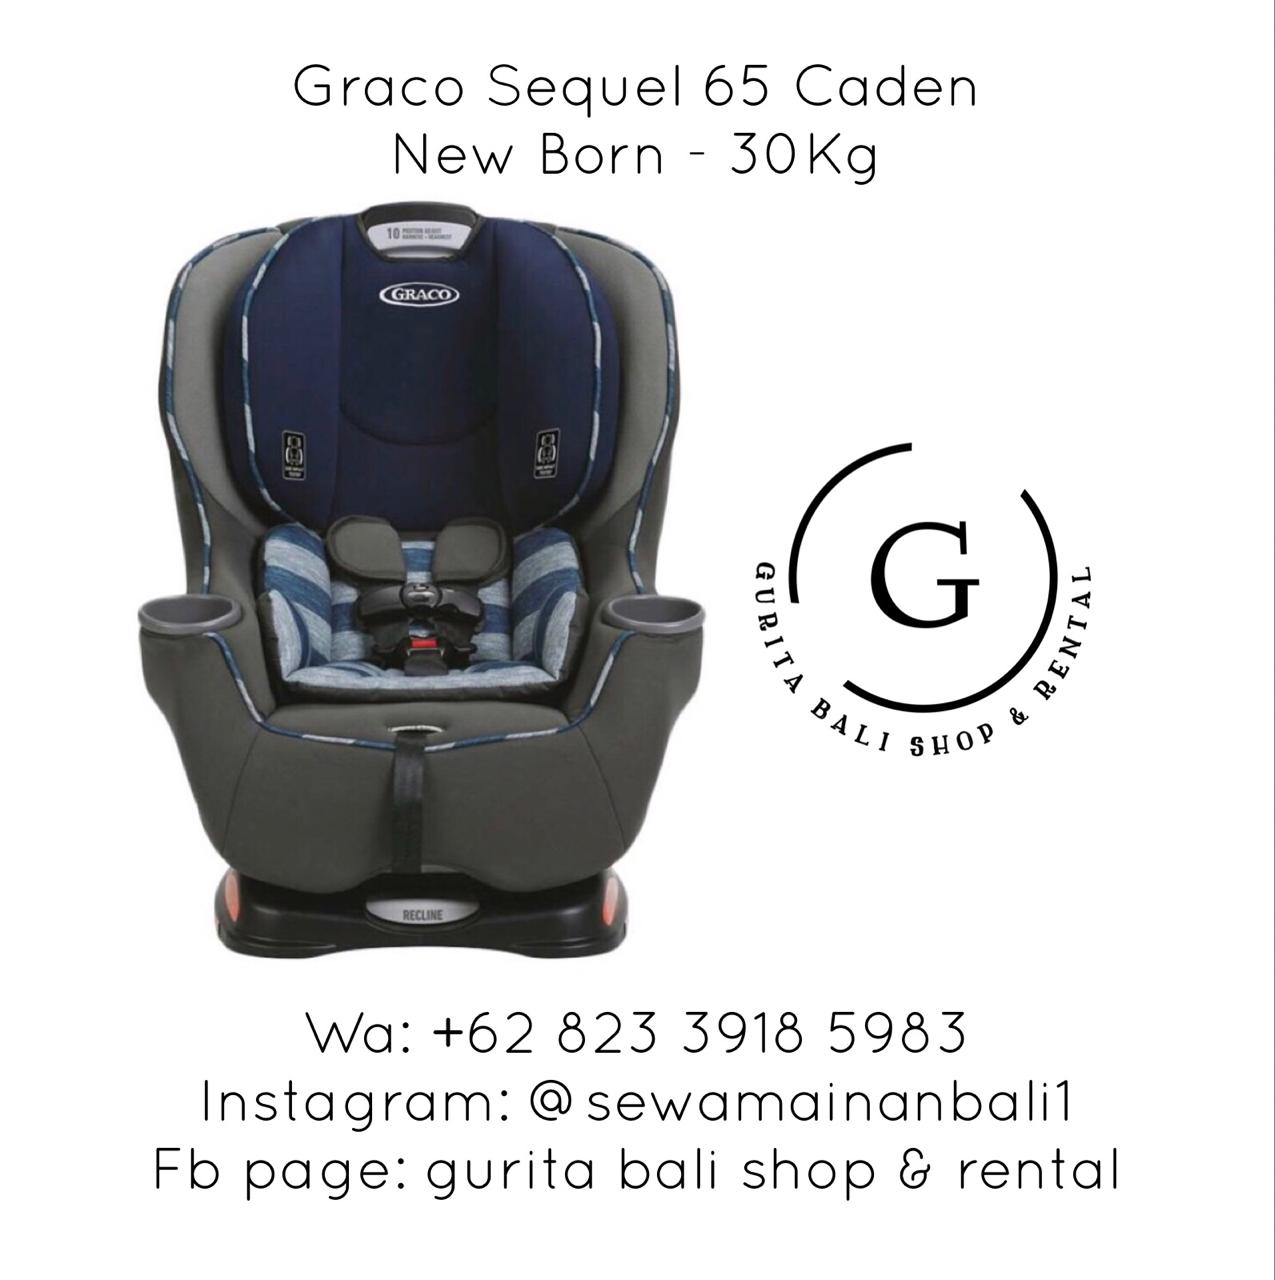 GRACO SEQUEL 65 CADEN (1)